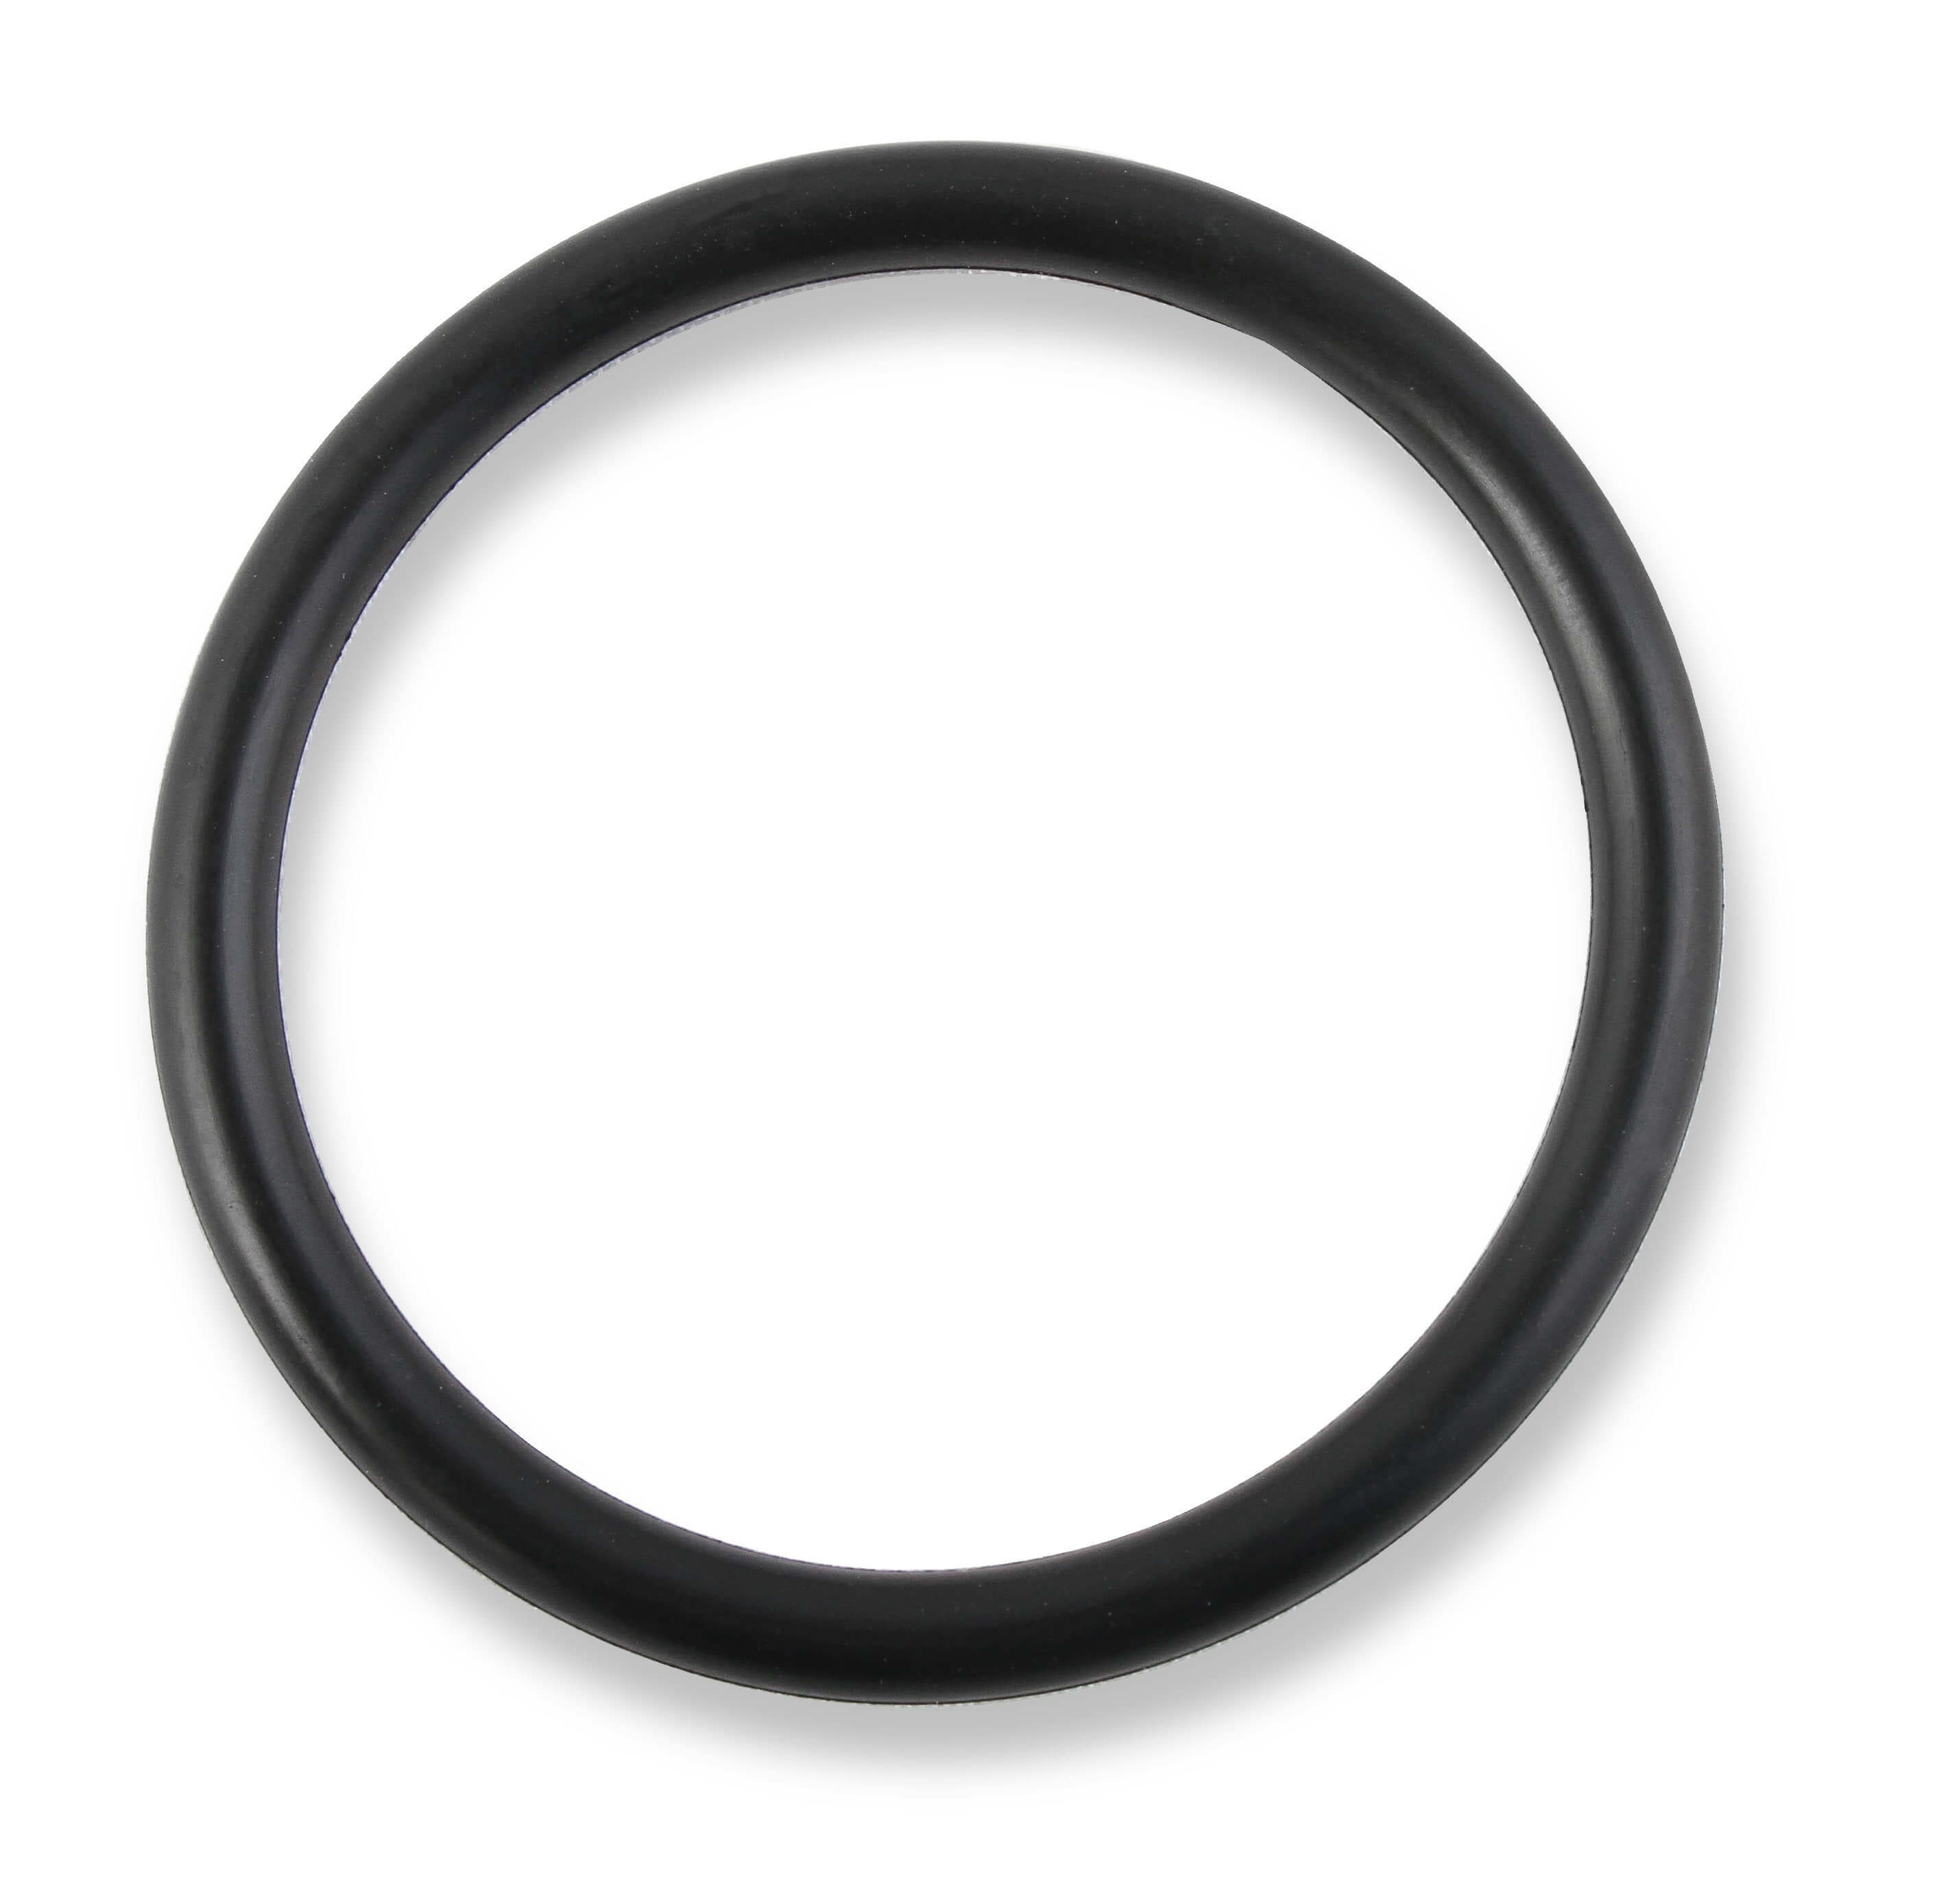 Earls 176517ERL O-Ring, 2.500 in OD, Rubber, Earl's Oil Filter Adapter, Each